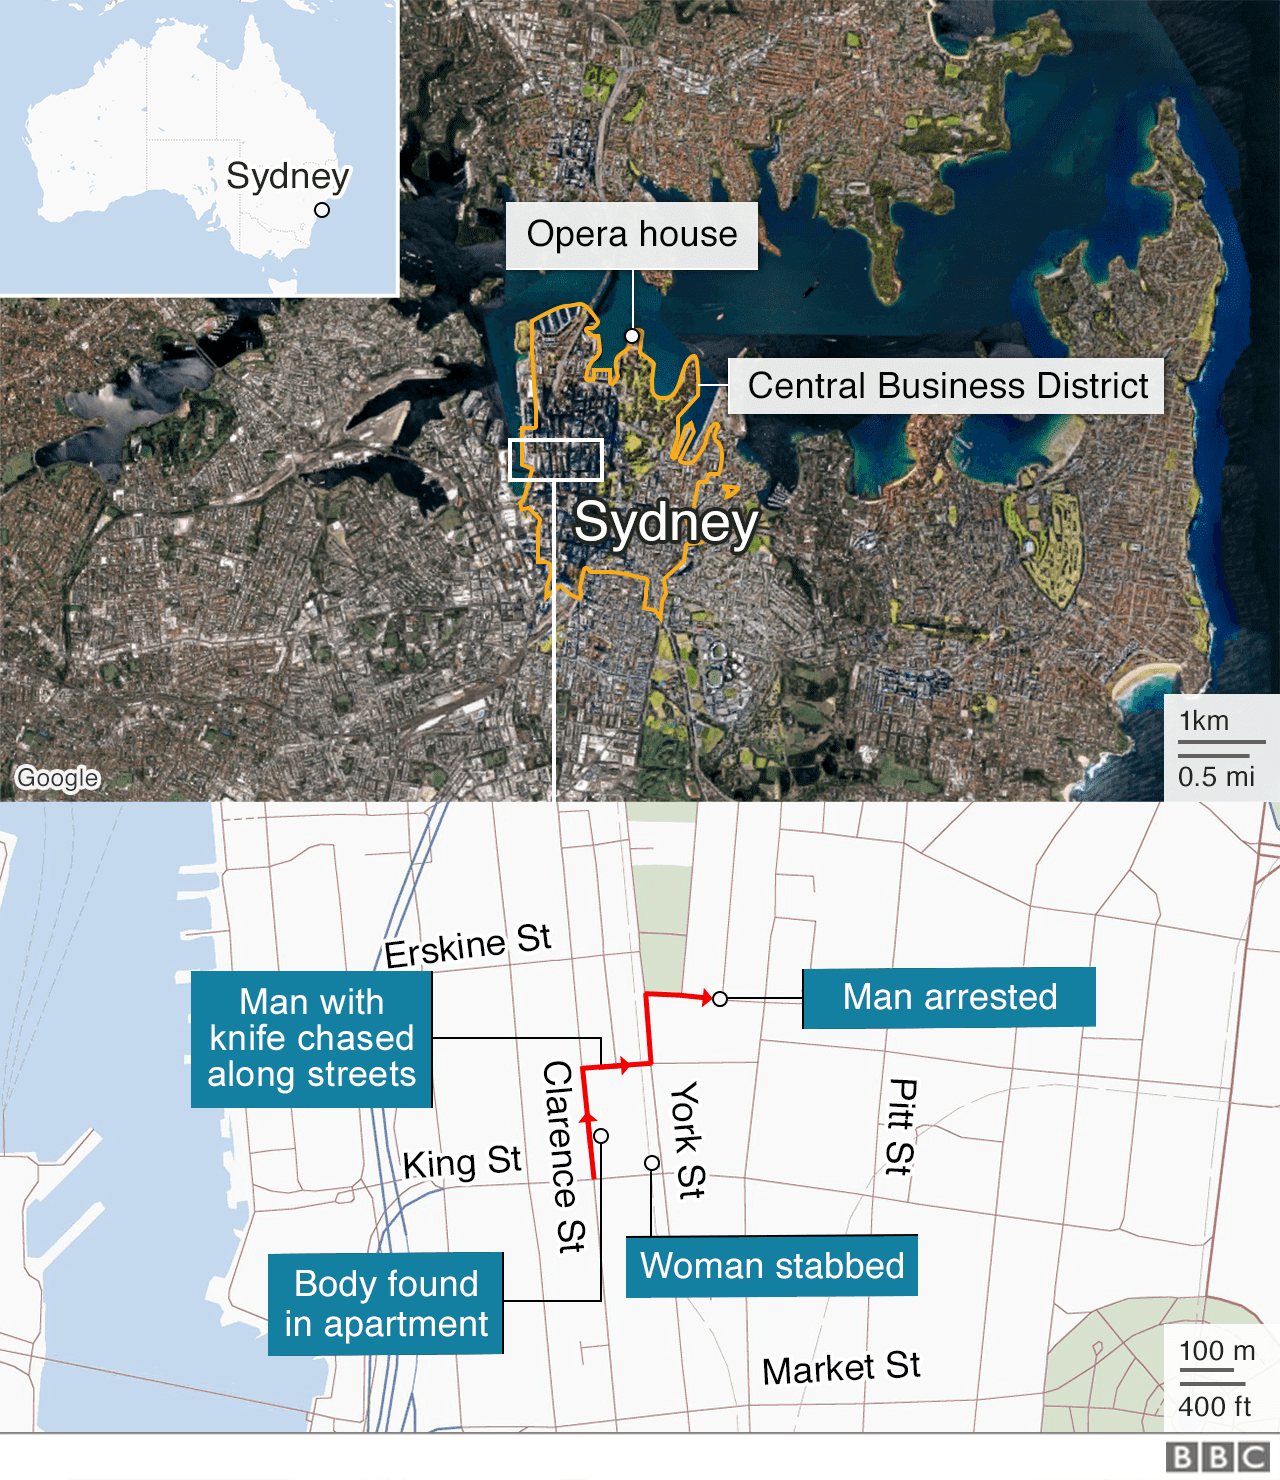 Map showing the area in Sydney where the attack took place and where a man was arrested